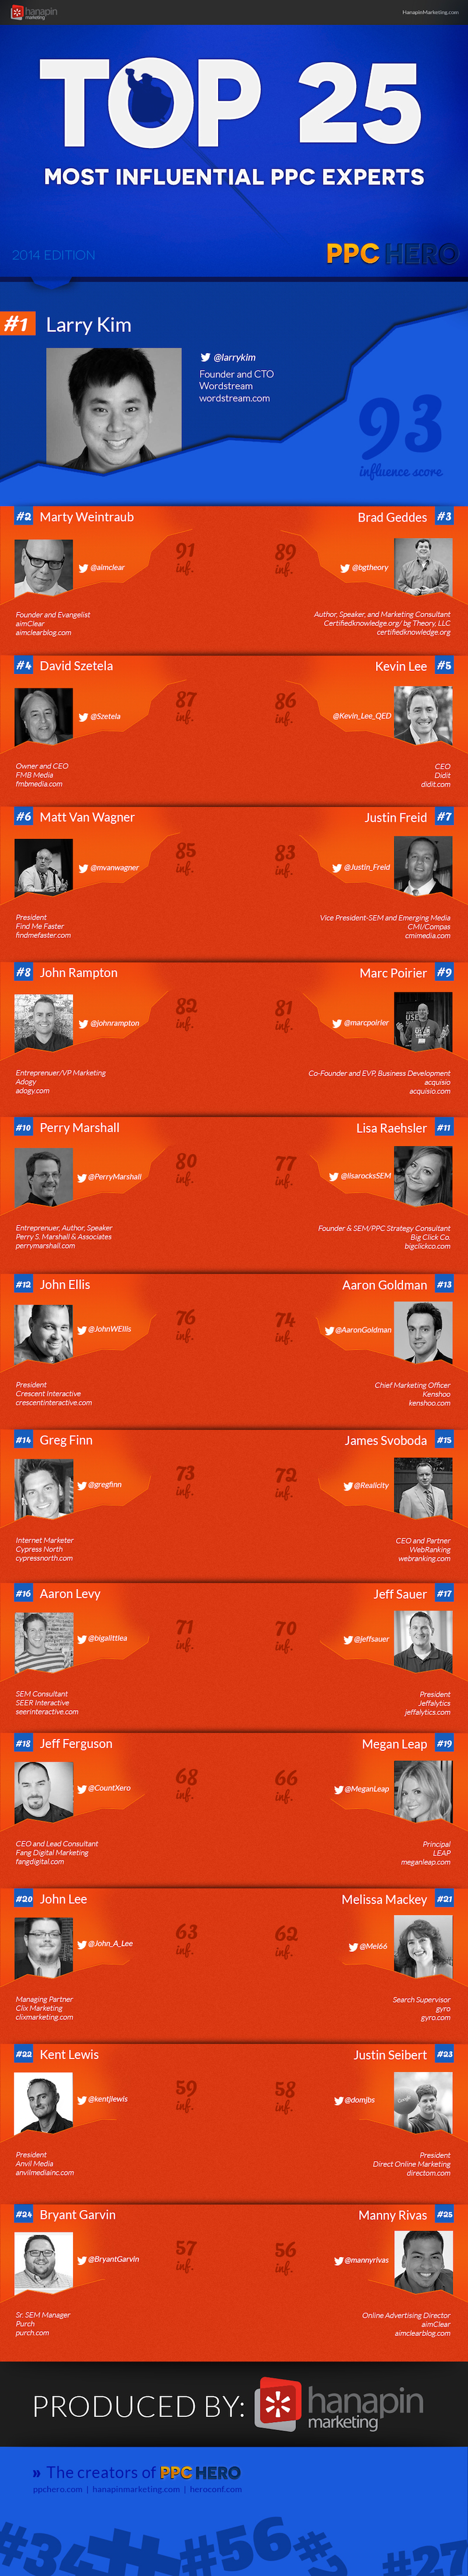 PPC experts infographic